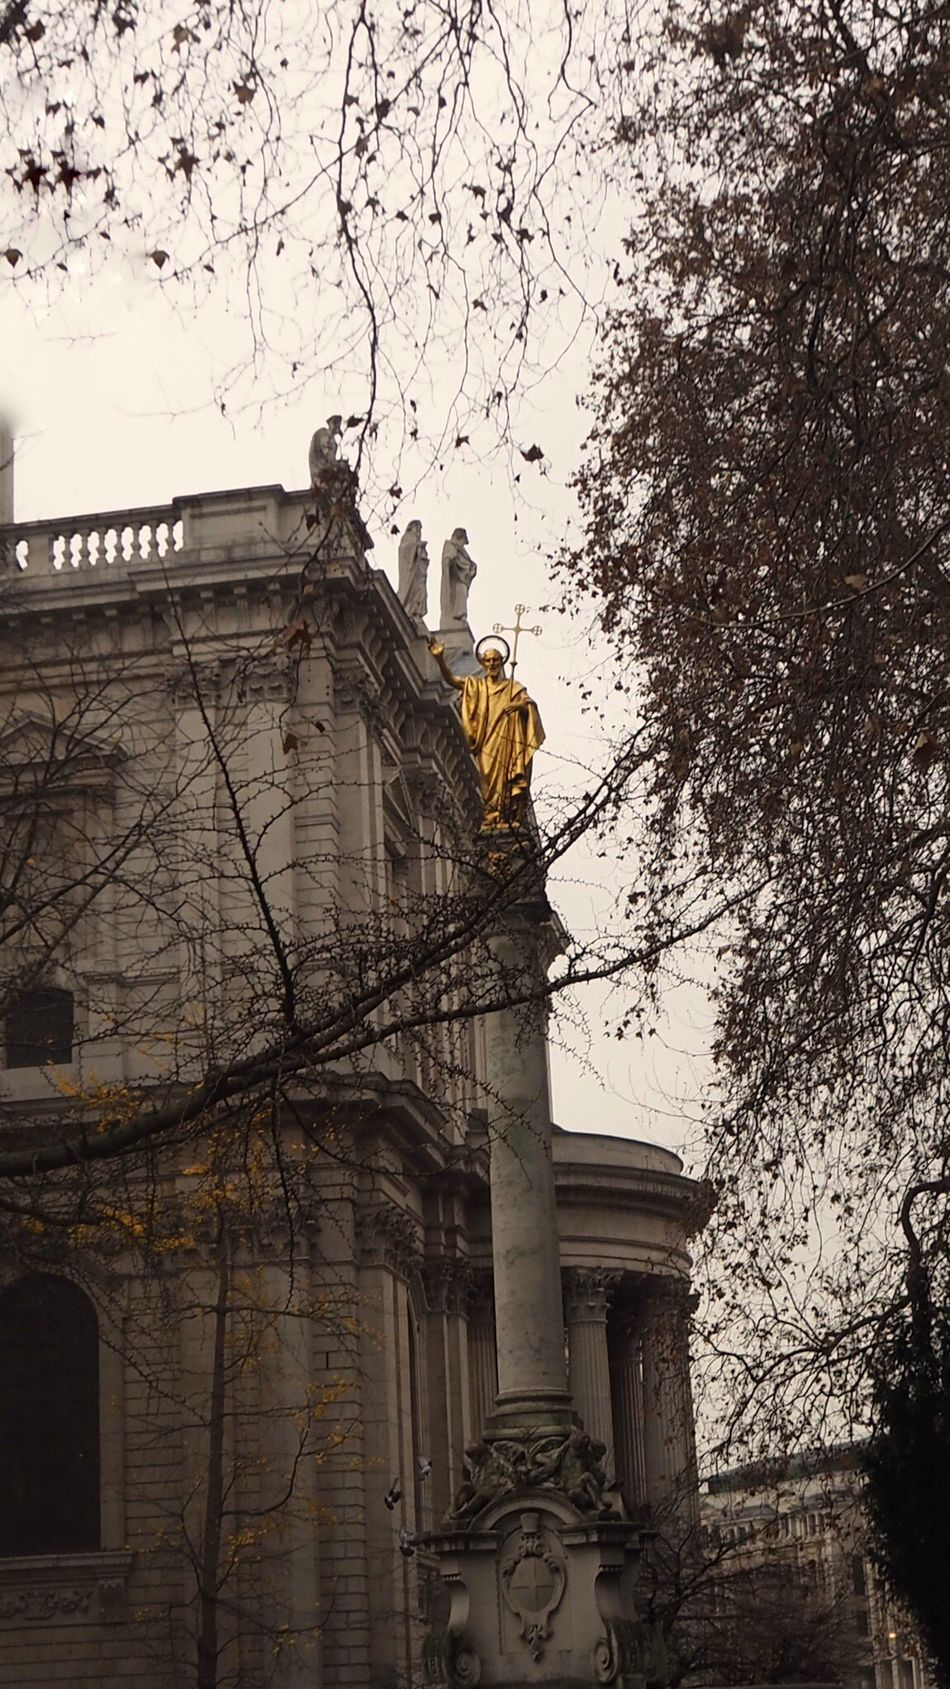 The City Light Architecture Bare Tree Street Photography London Shootermag Getty Images TheMinimals (less Edit Juxt Photography) The Purist (no Edit, No Filter) Adapted To The City He Will Shelter You Under His Wings... Architecture Low Angle View